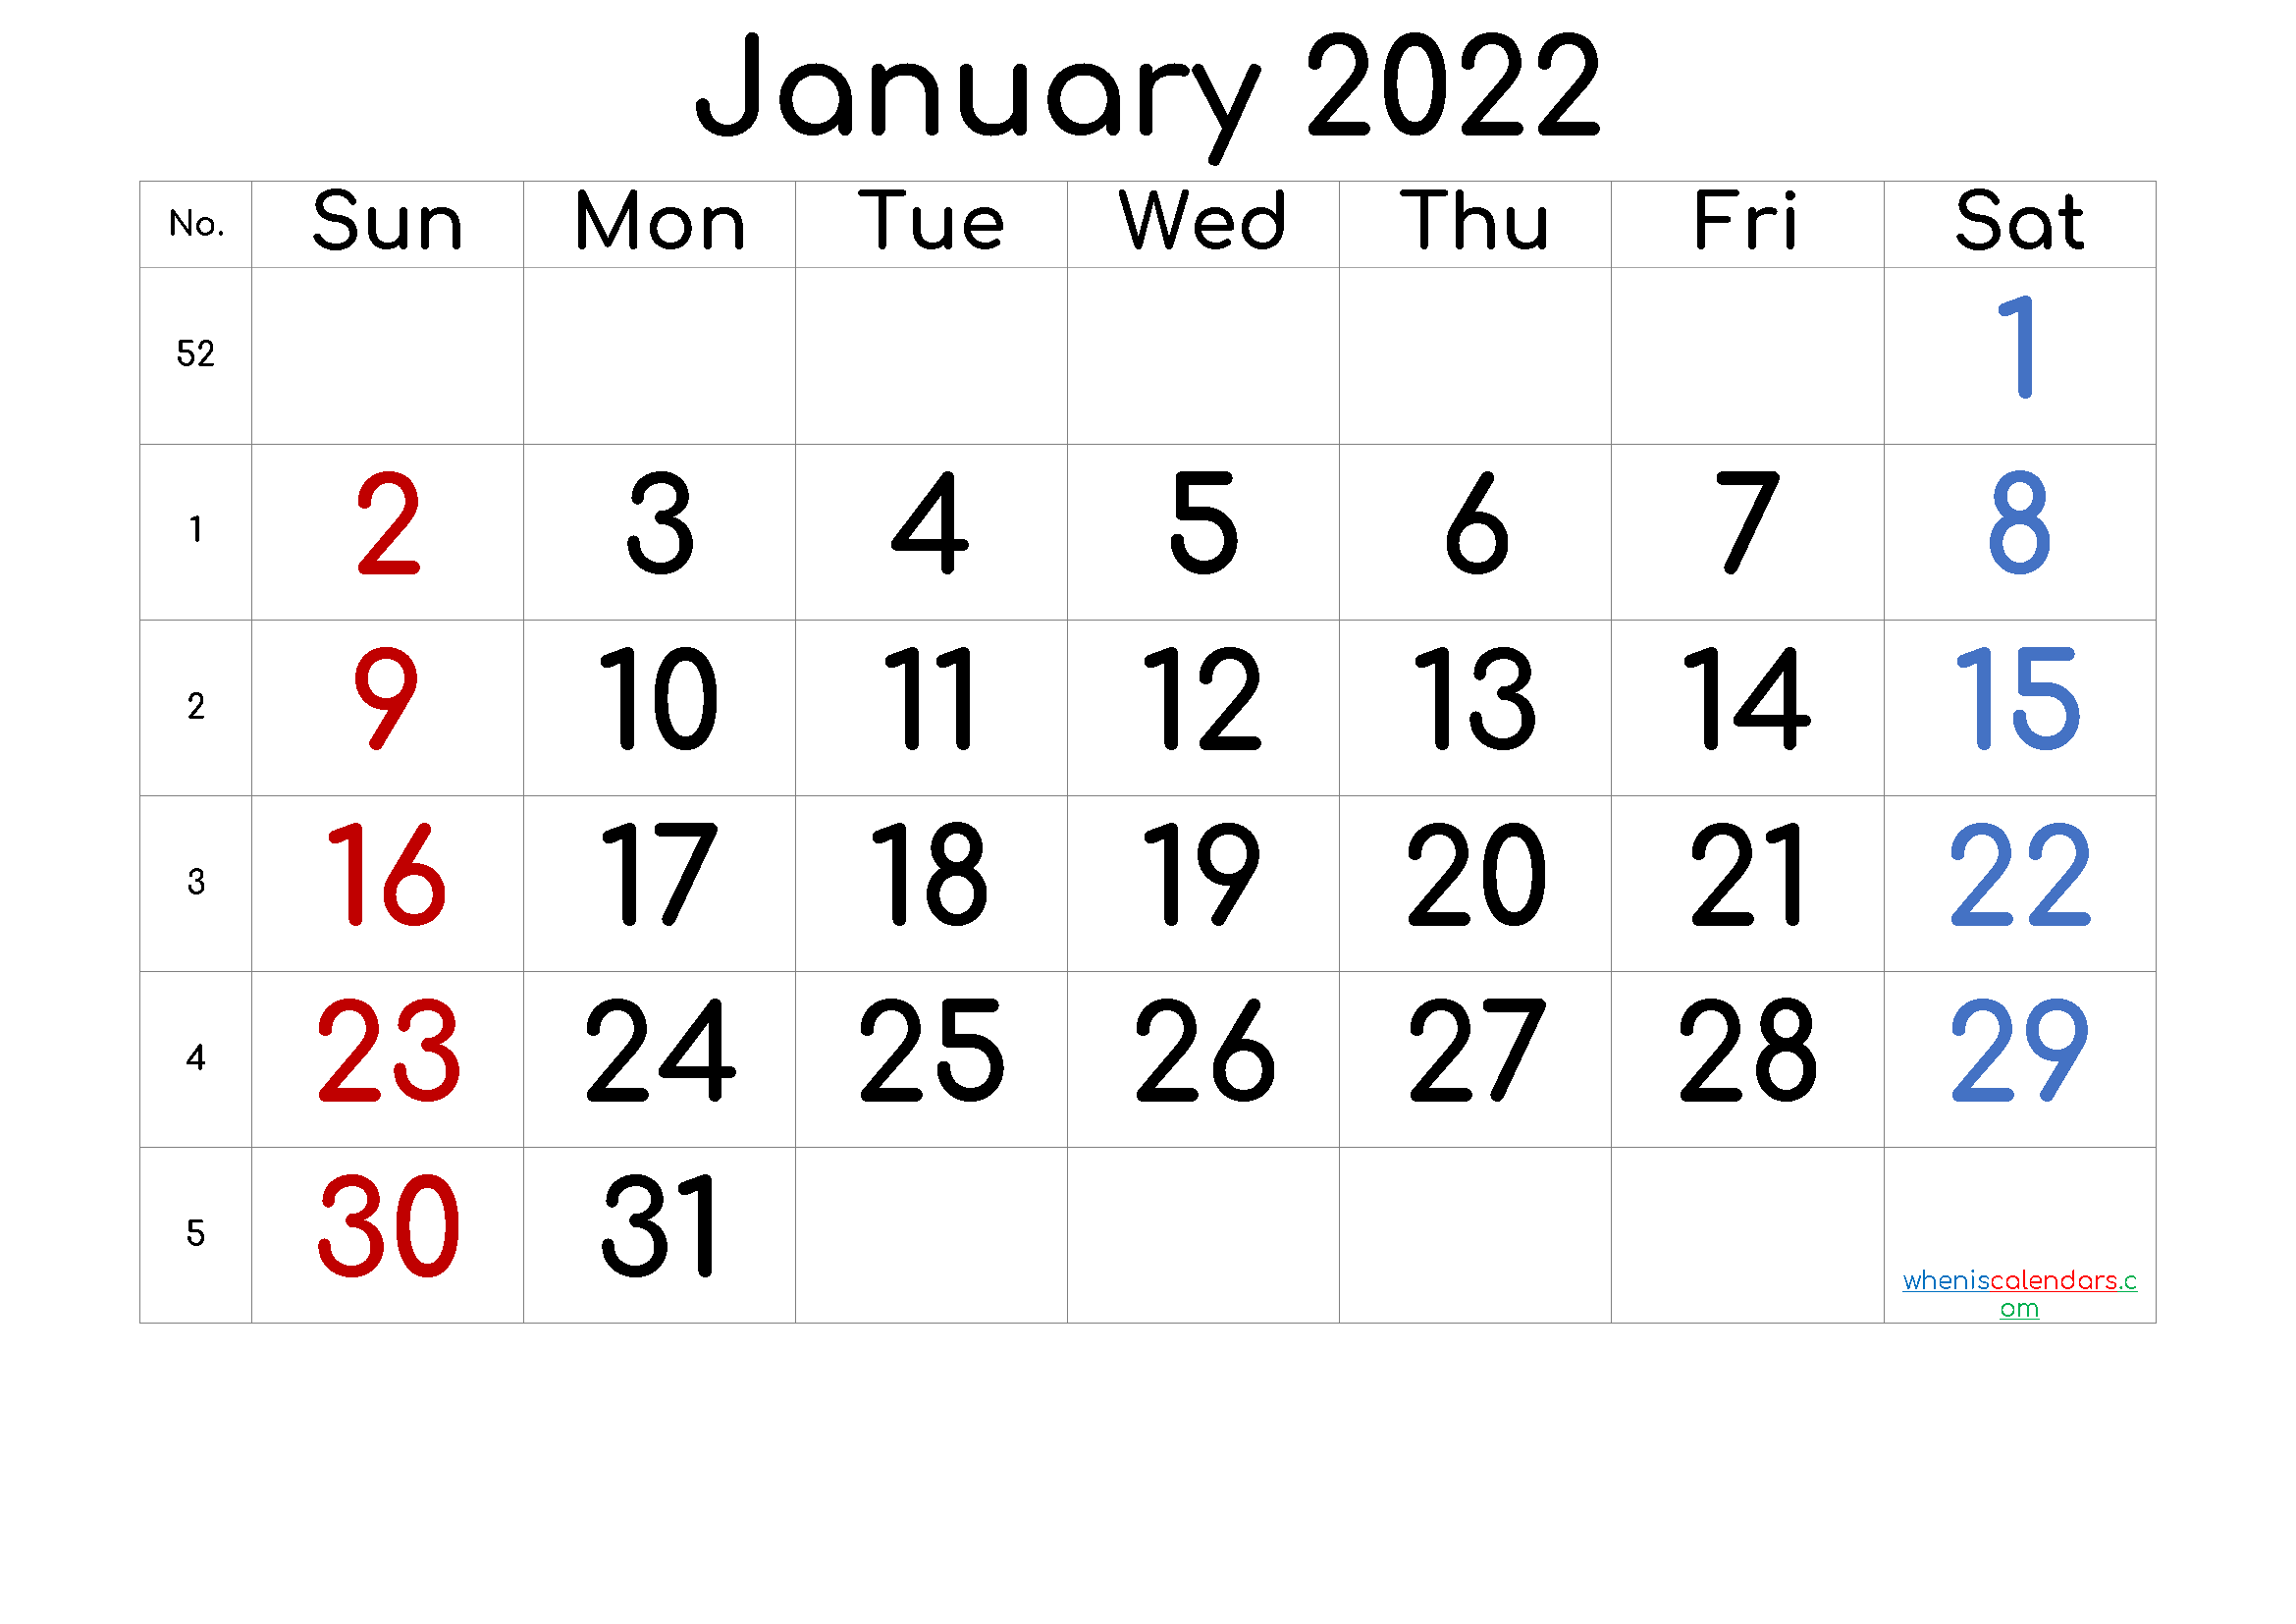 January 2022 Printable Calendar with Week Numbers